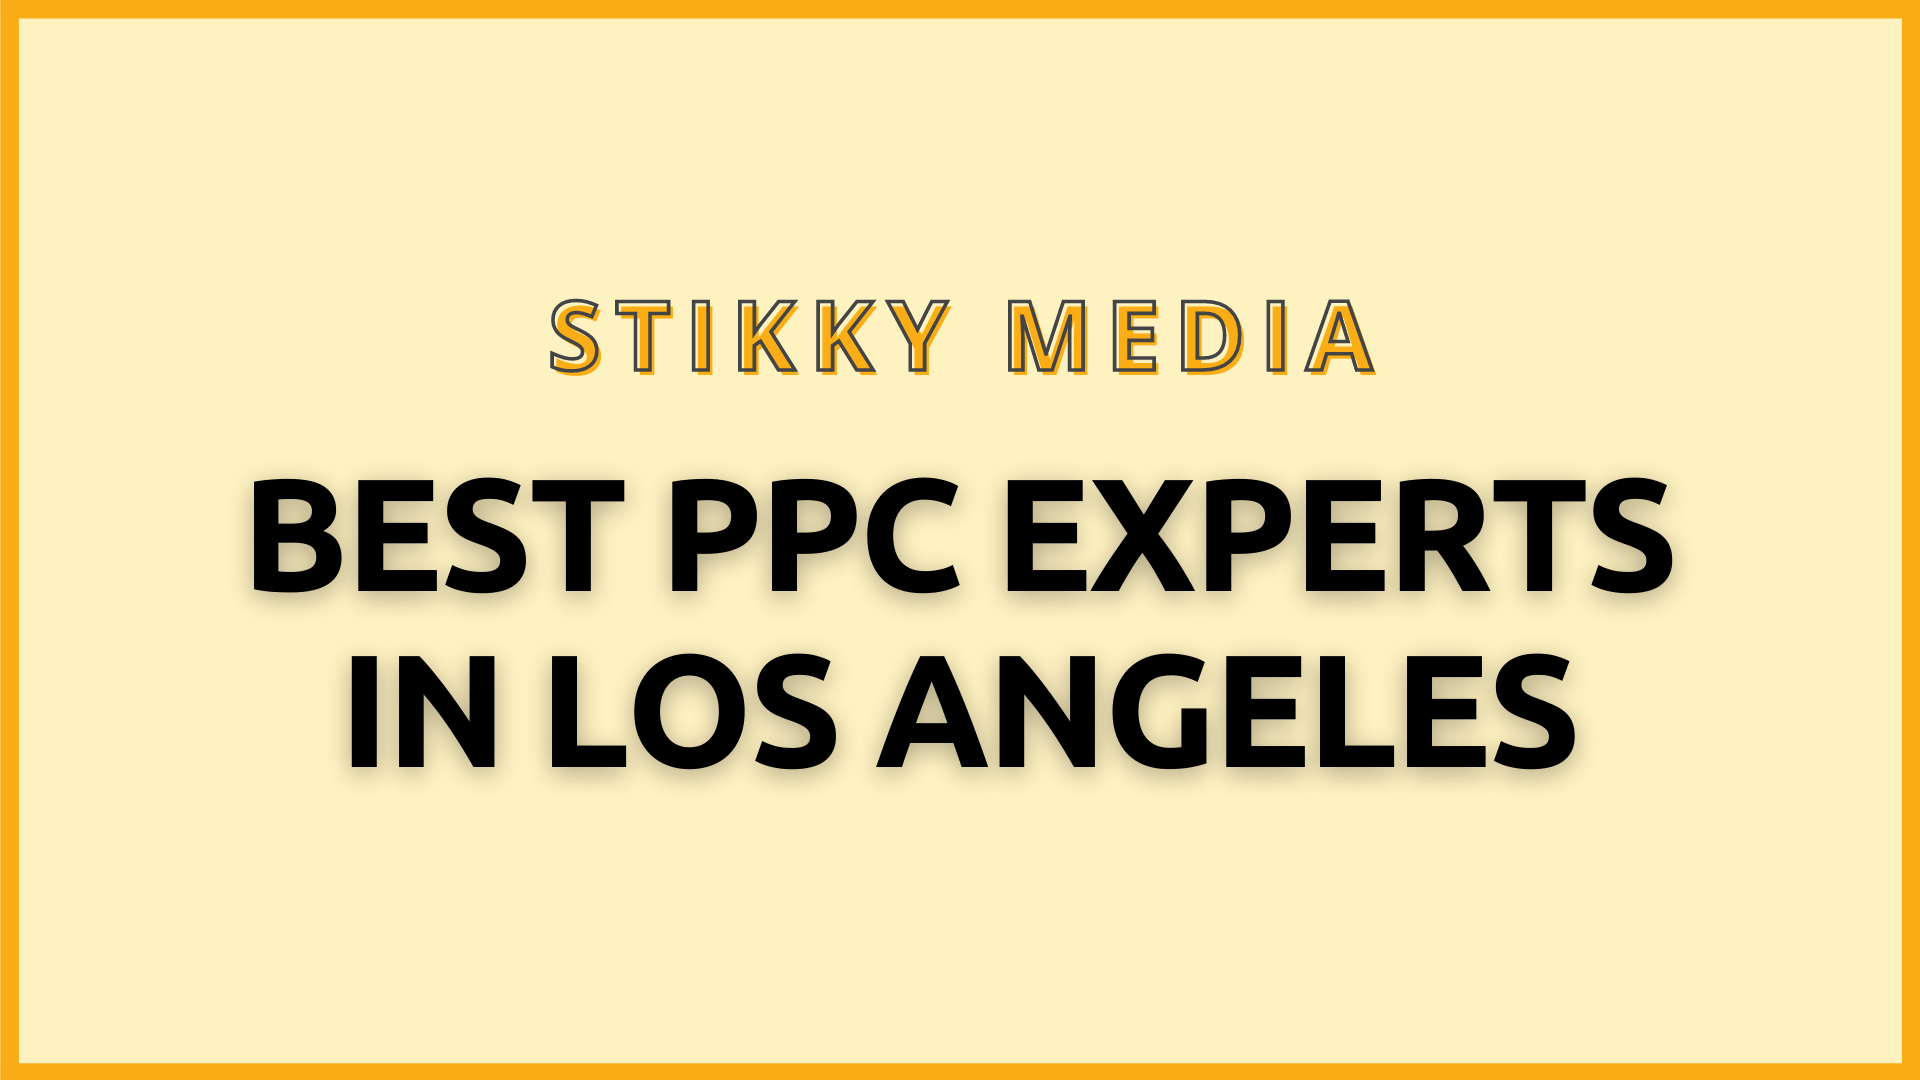 PPC Management in Los Angeles - Stikky Media